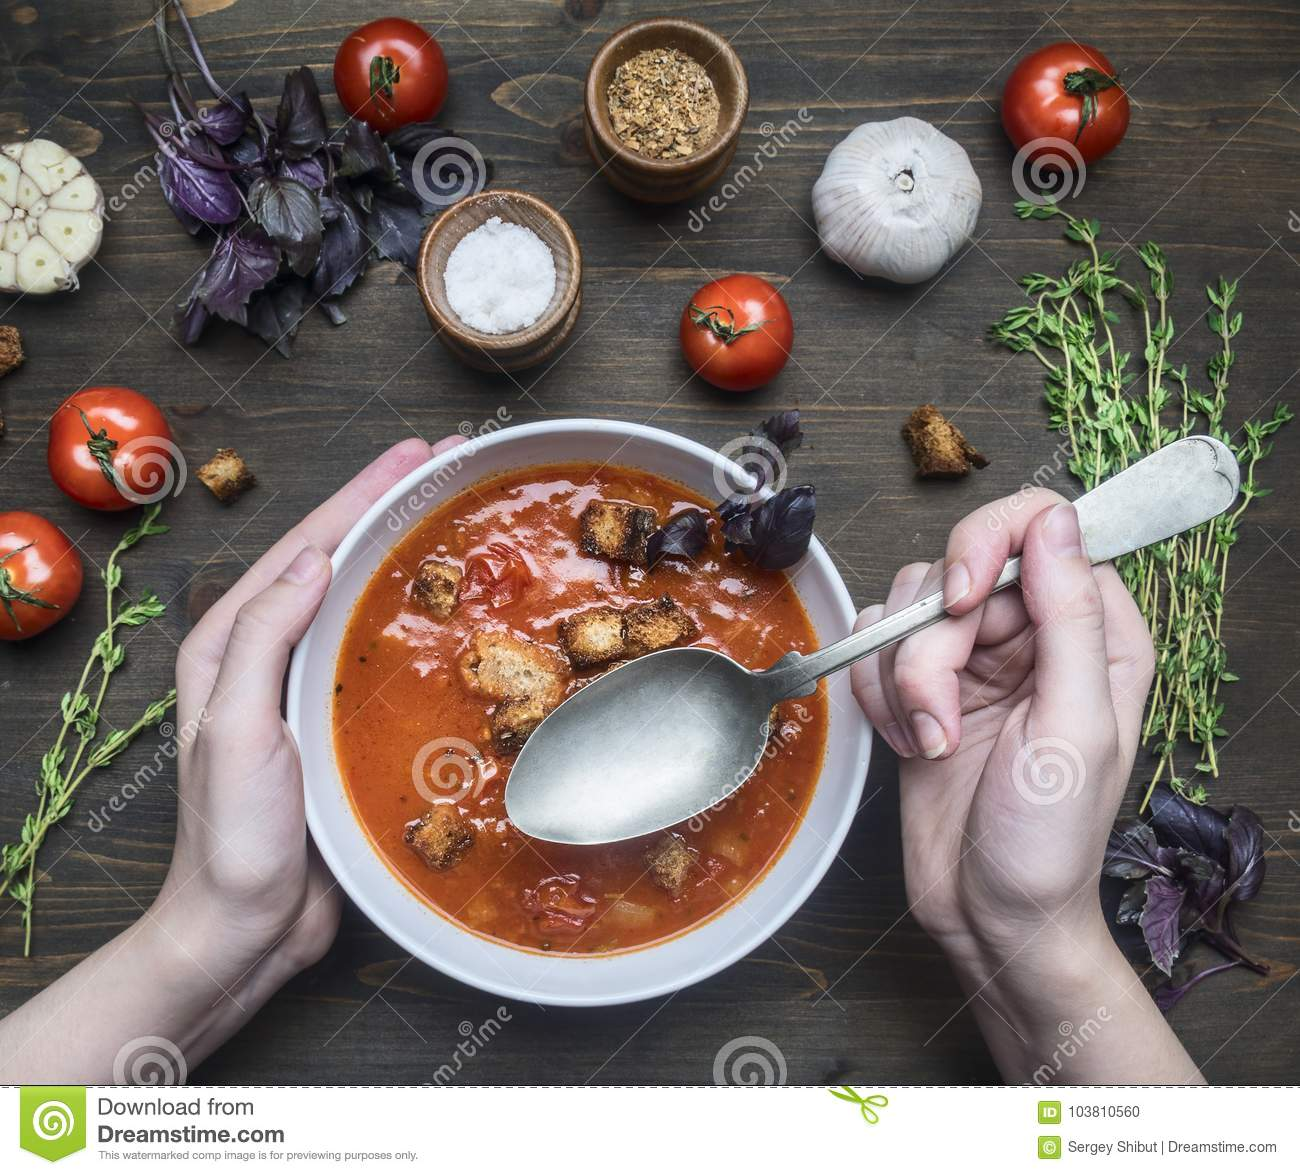 Freshly prepared tomato soup with basil, garlic and onion, thyme and seasonings, in a white plate, girl scooped up a spoon, on